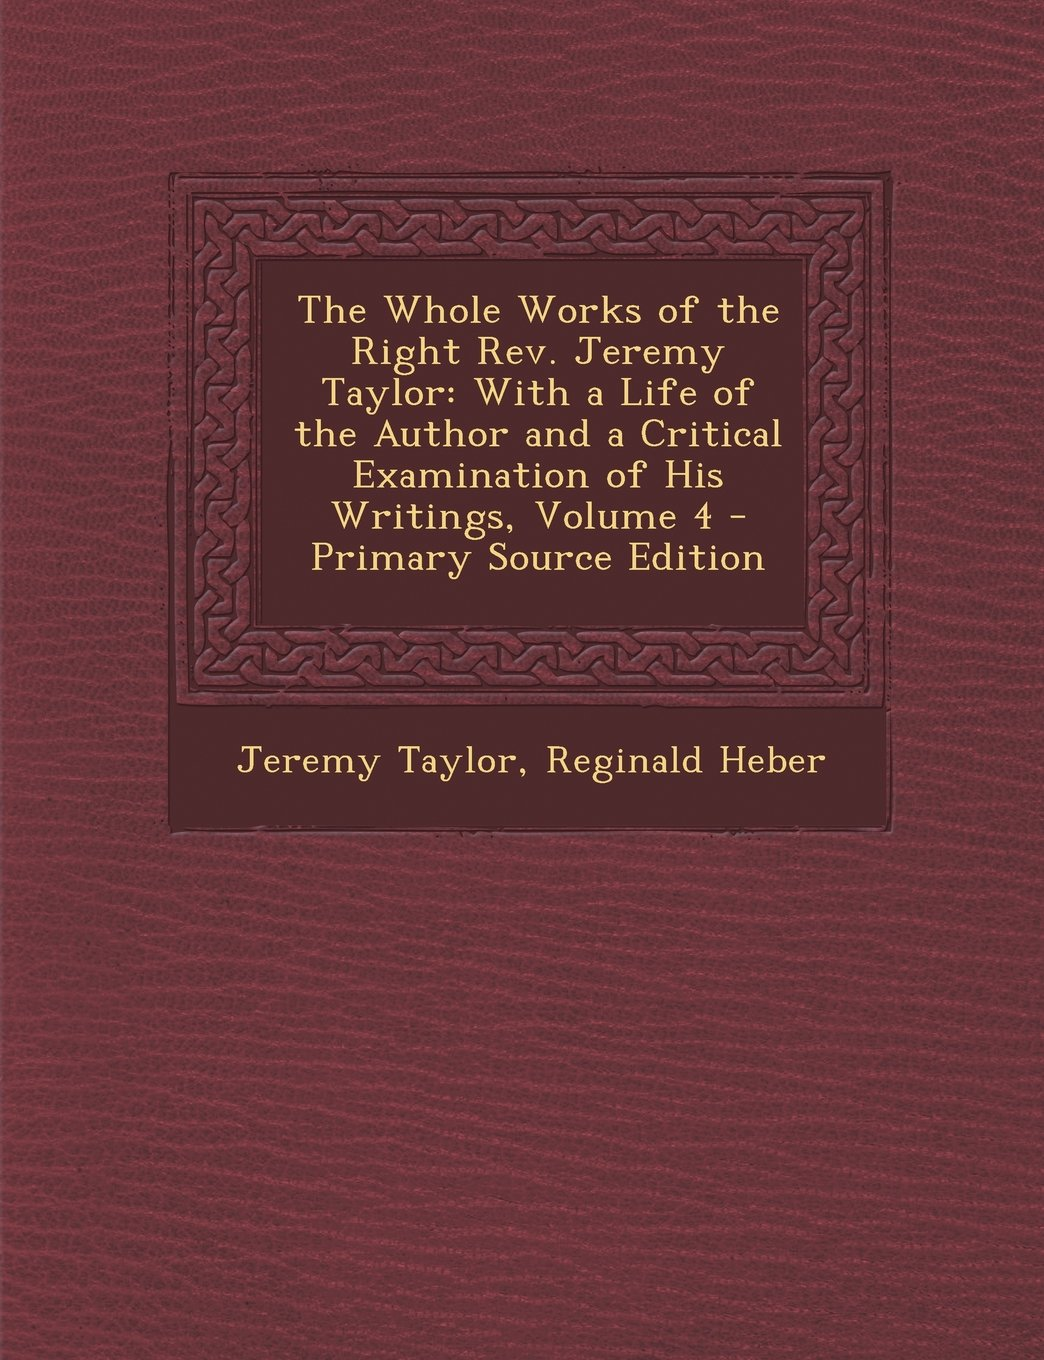 Read Online The Whole Works of the Right REV. Jeremy Taylor: With a Life of the Author and a Critical Examination of His Writings, Volume 4 - Primary Source Editi ebook